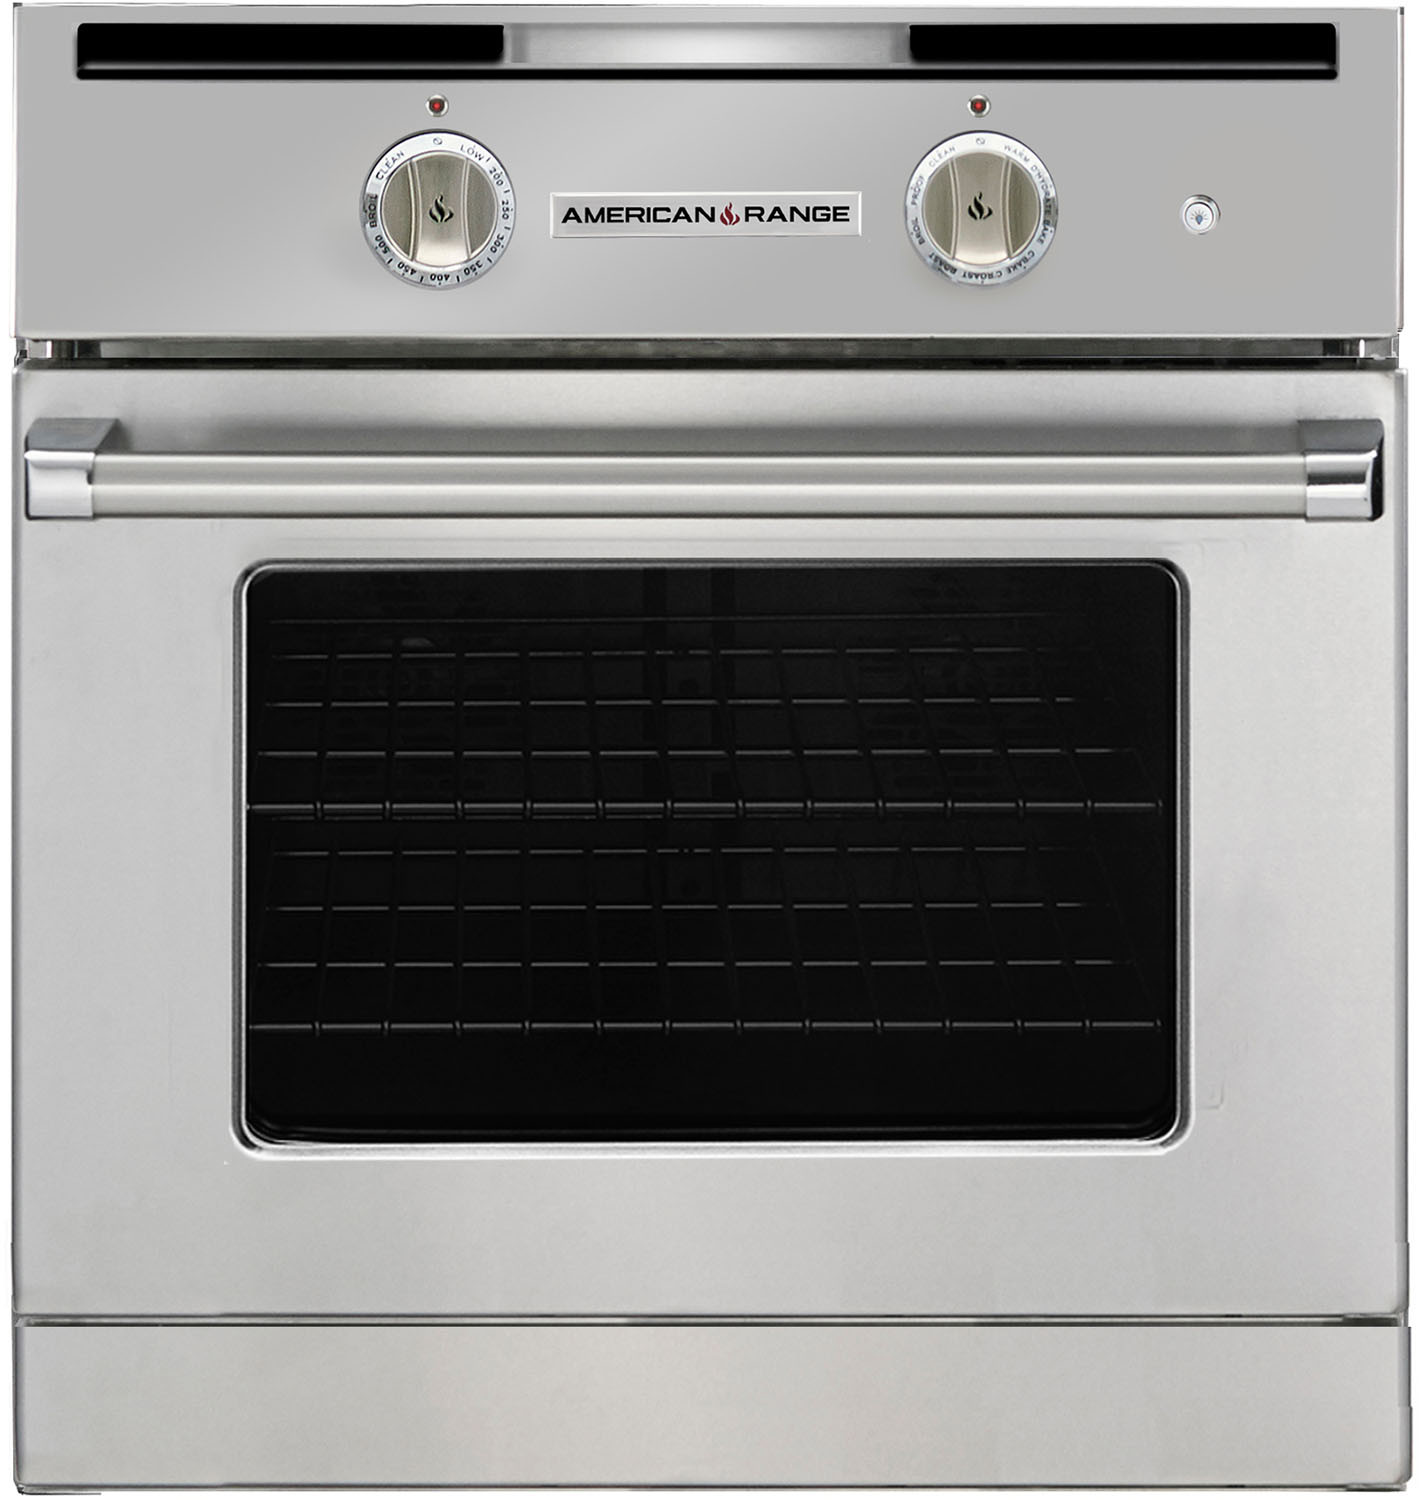 American Range Legacy Series 30 Inch Single Chef Door Gas Wall Oven